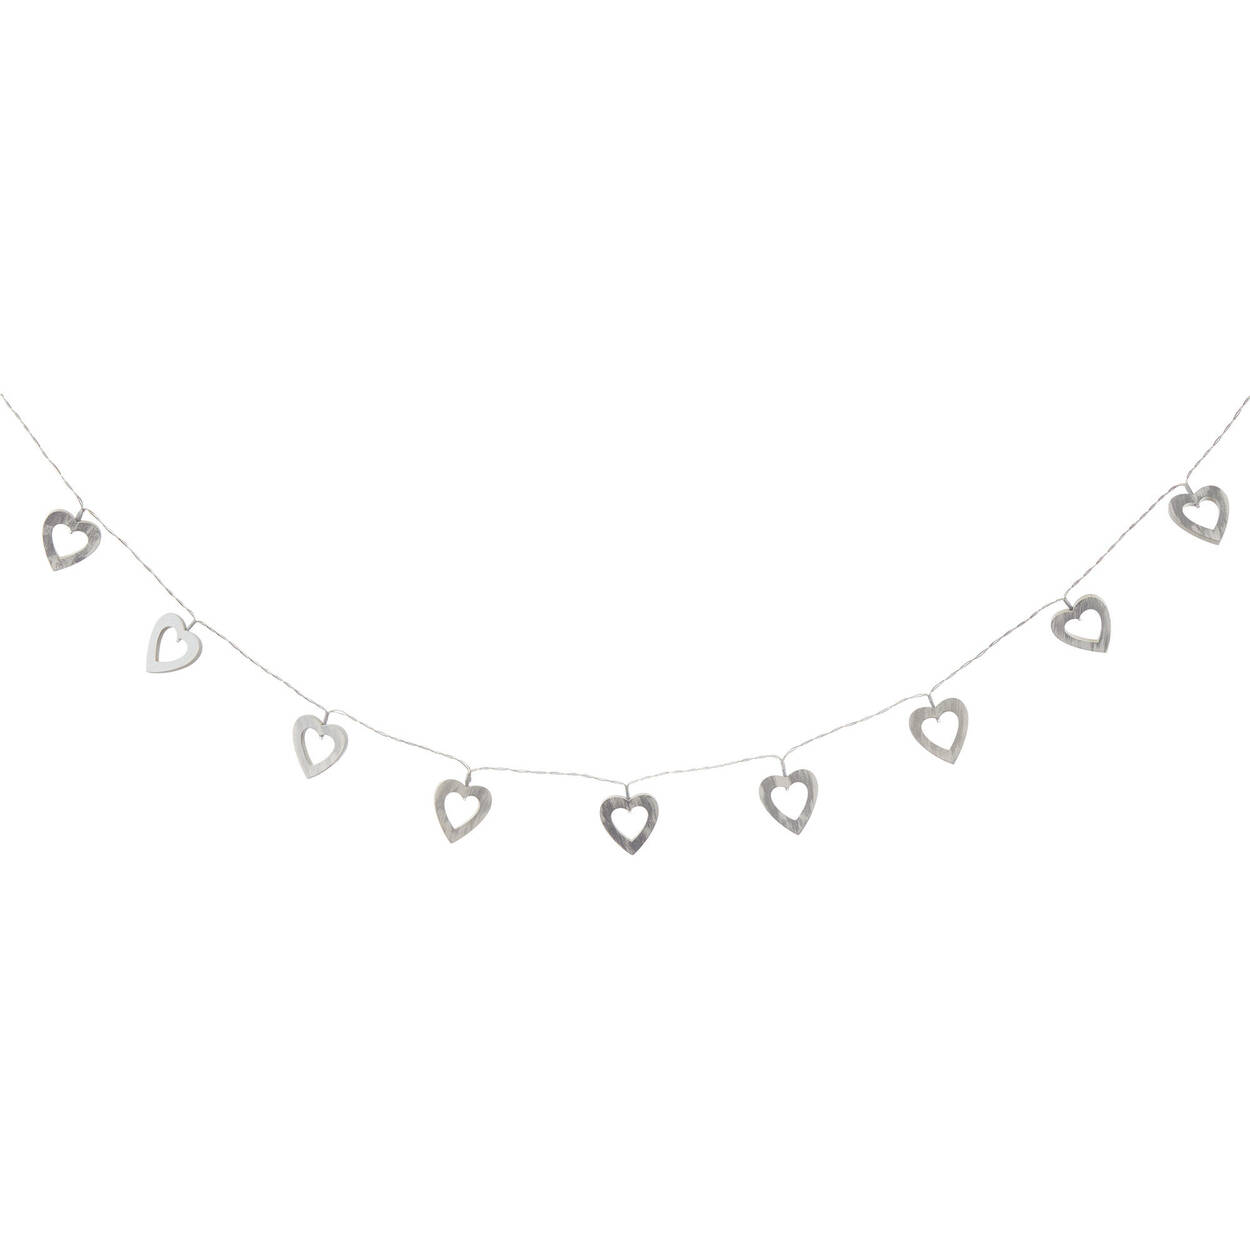 Heart String Lights